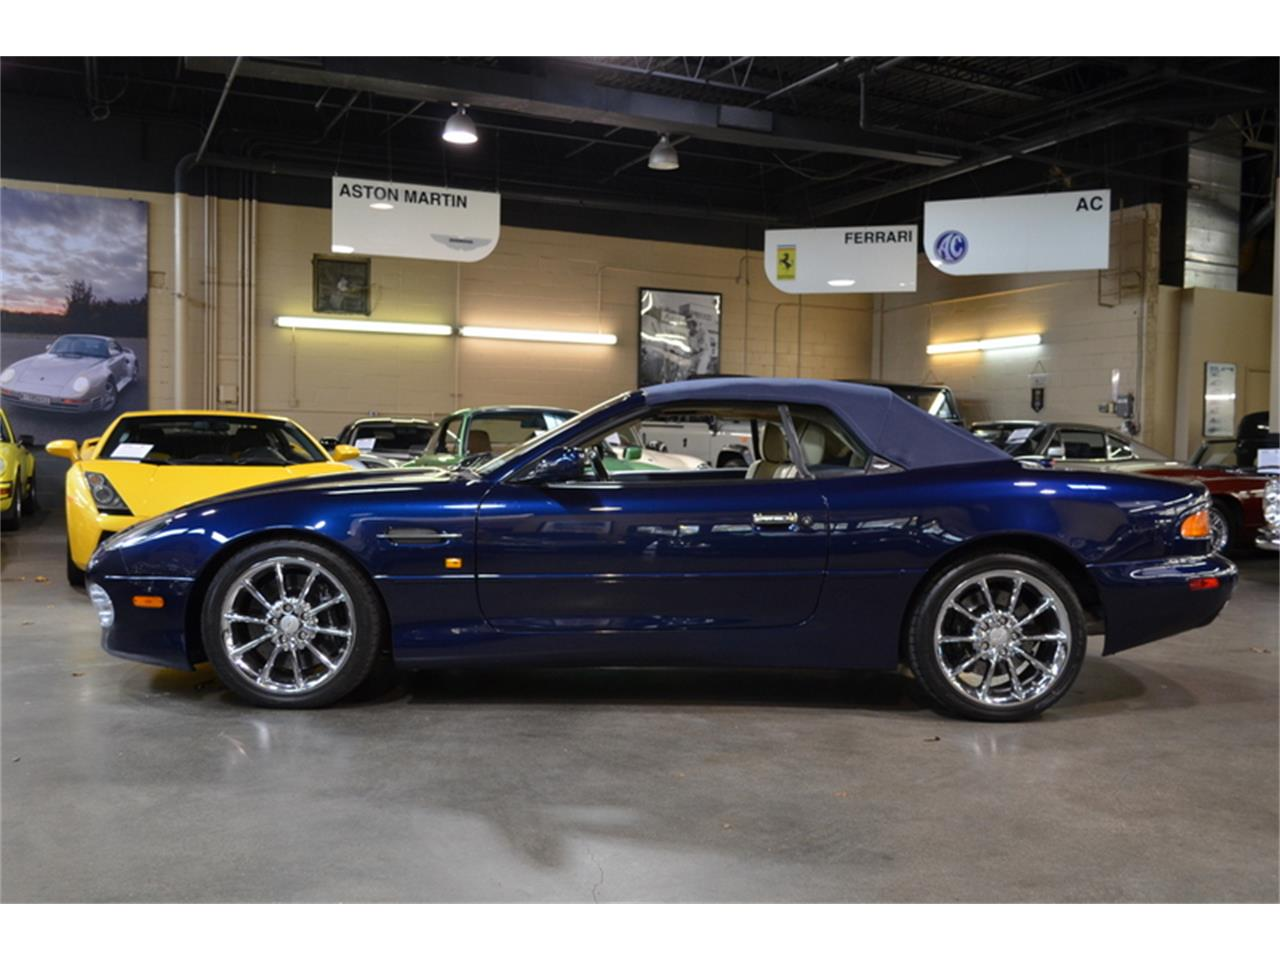 Large Picture of '02 DB7 Vantage Volante located in New York - $39,500.00 - MBES